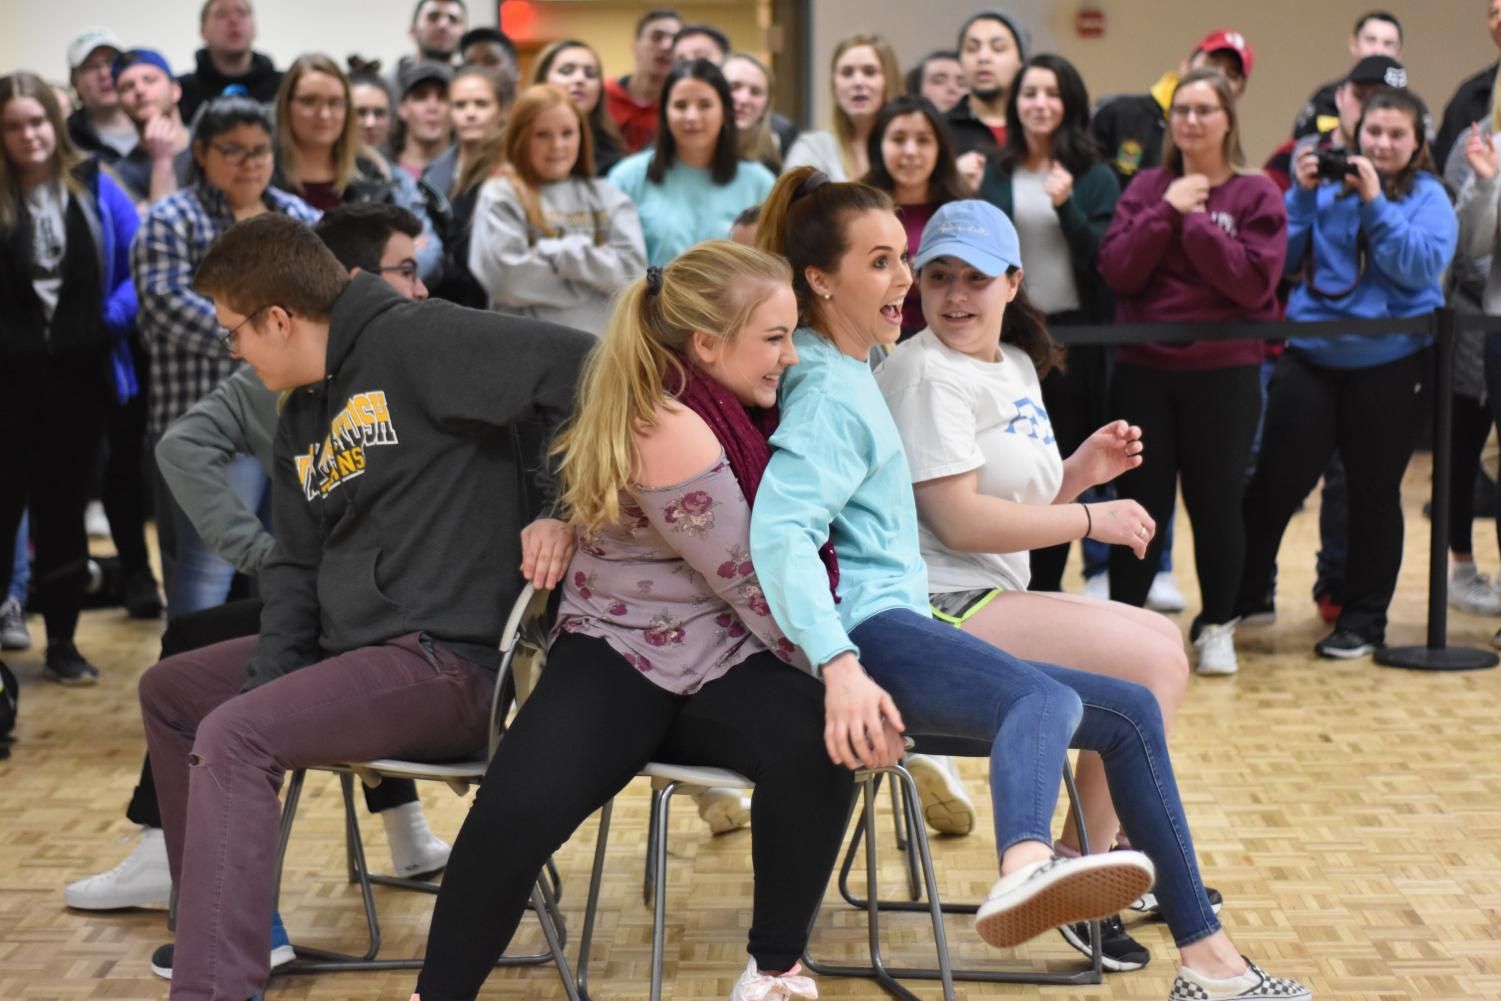 Students particpate in musical chairs during the 2019 Winter Carnival, aimed to engage students.